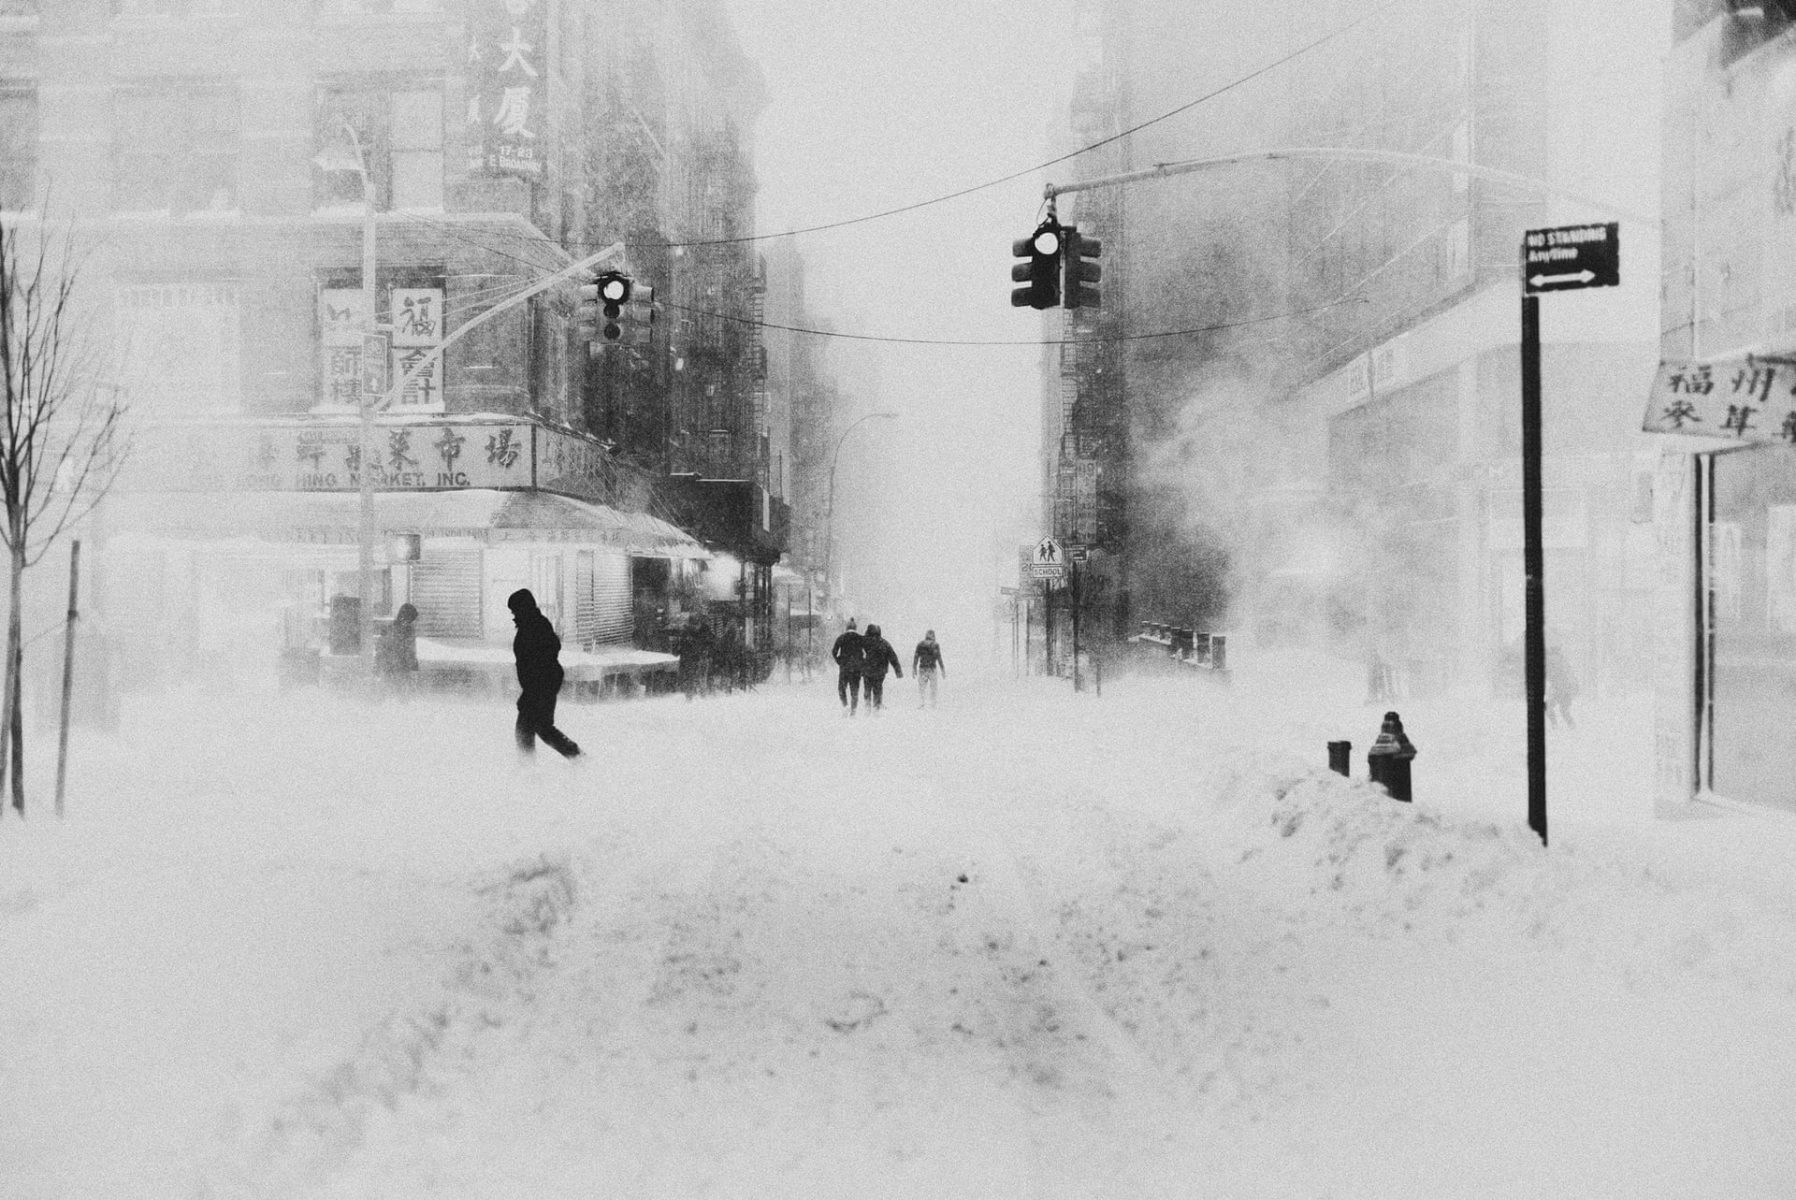 Black & white photography by Bastiaan Woudt New York City streets in a blizzard